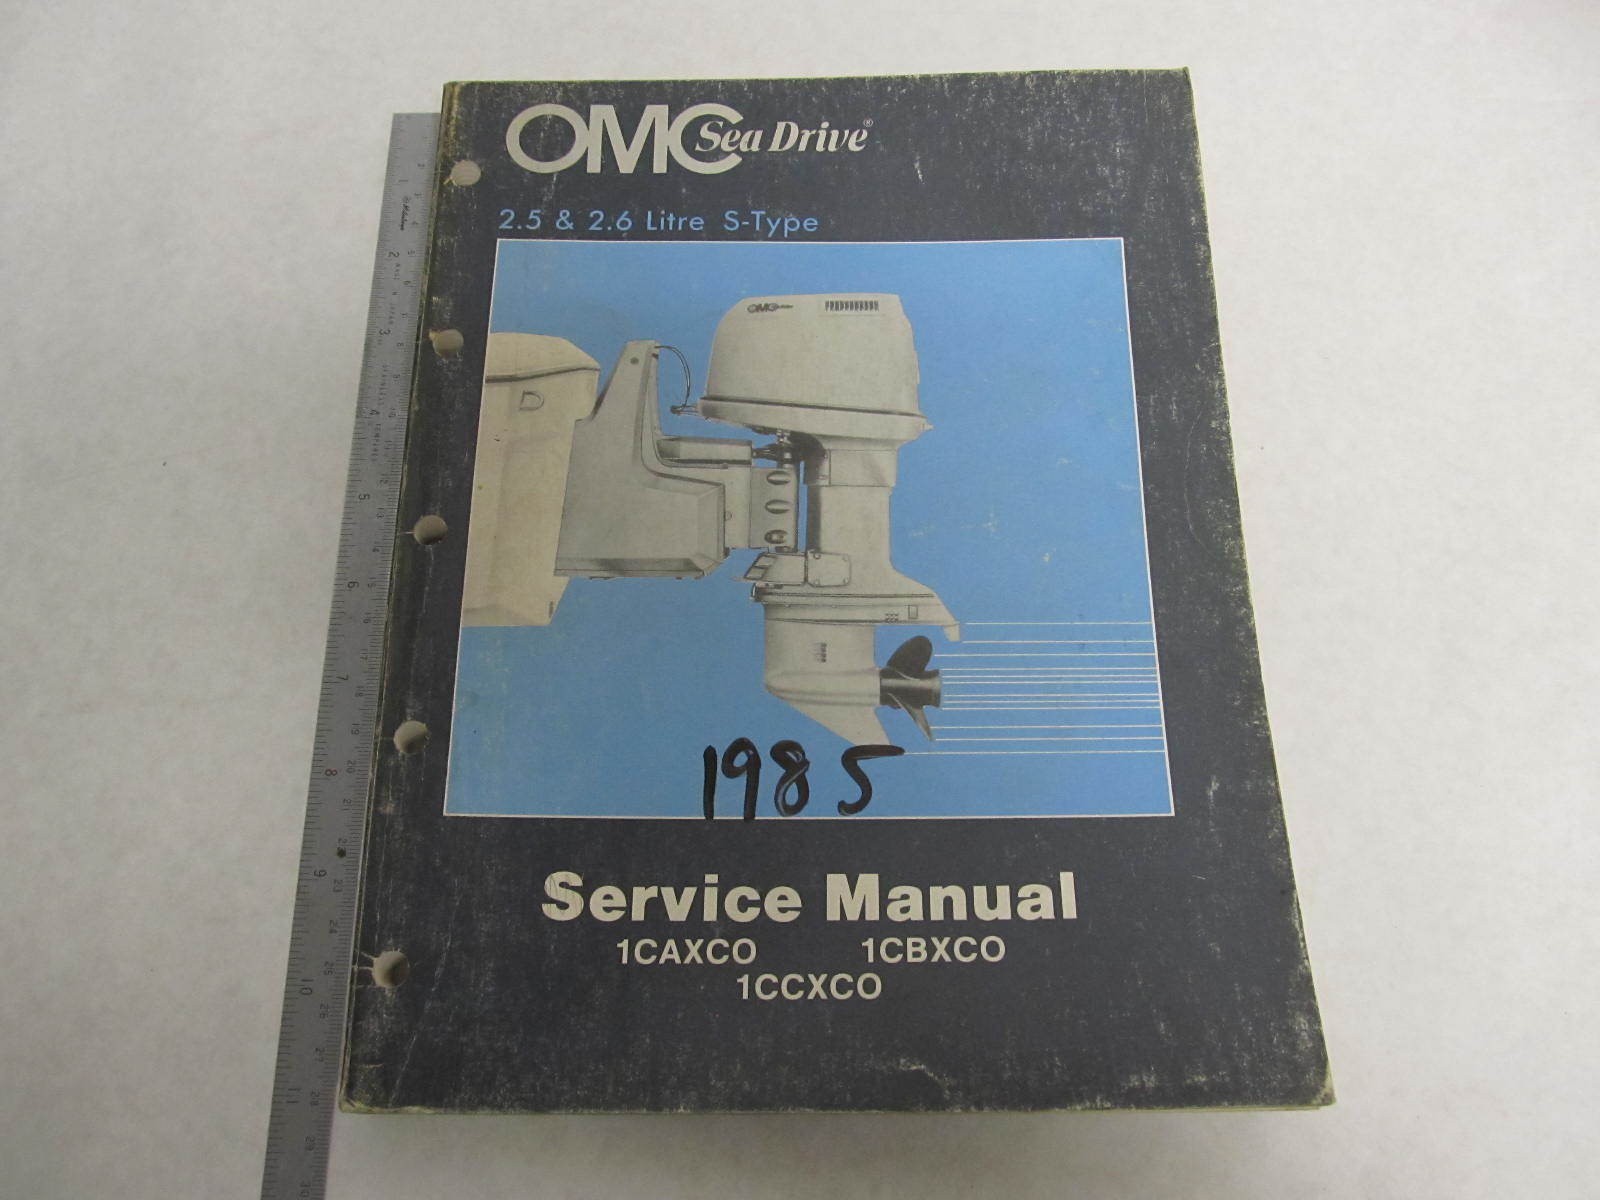 507513 1985 OMC Sea Drive Outboard Service Manual 2.5L & 2.6L ...